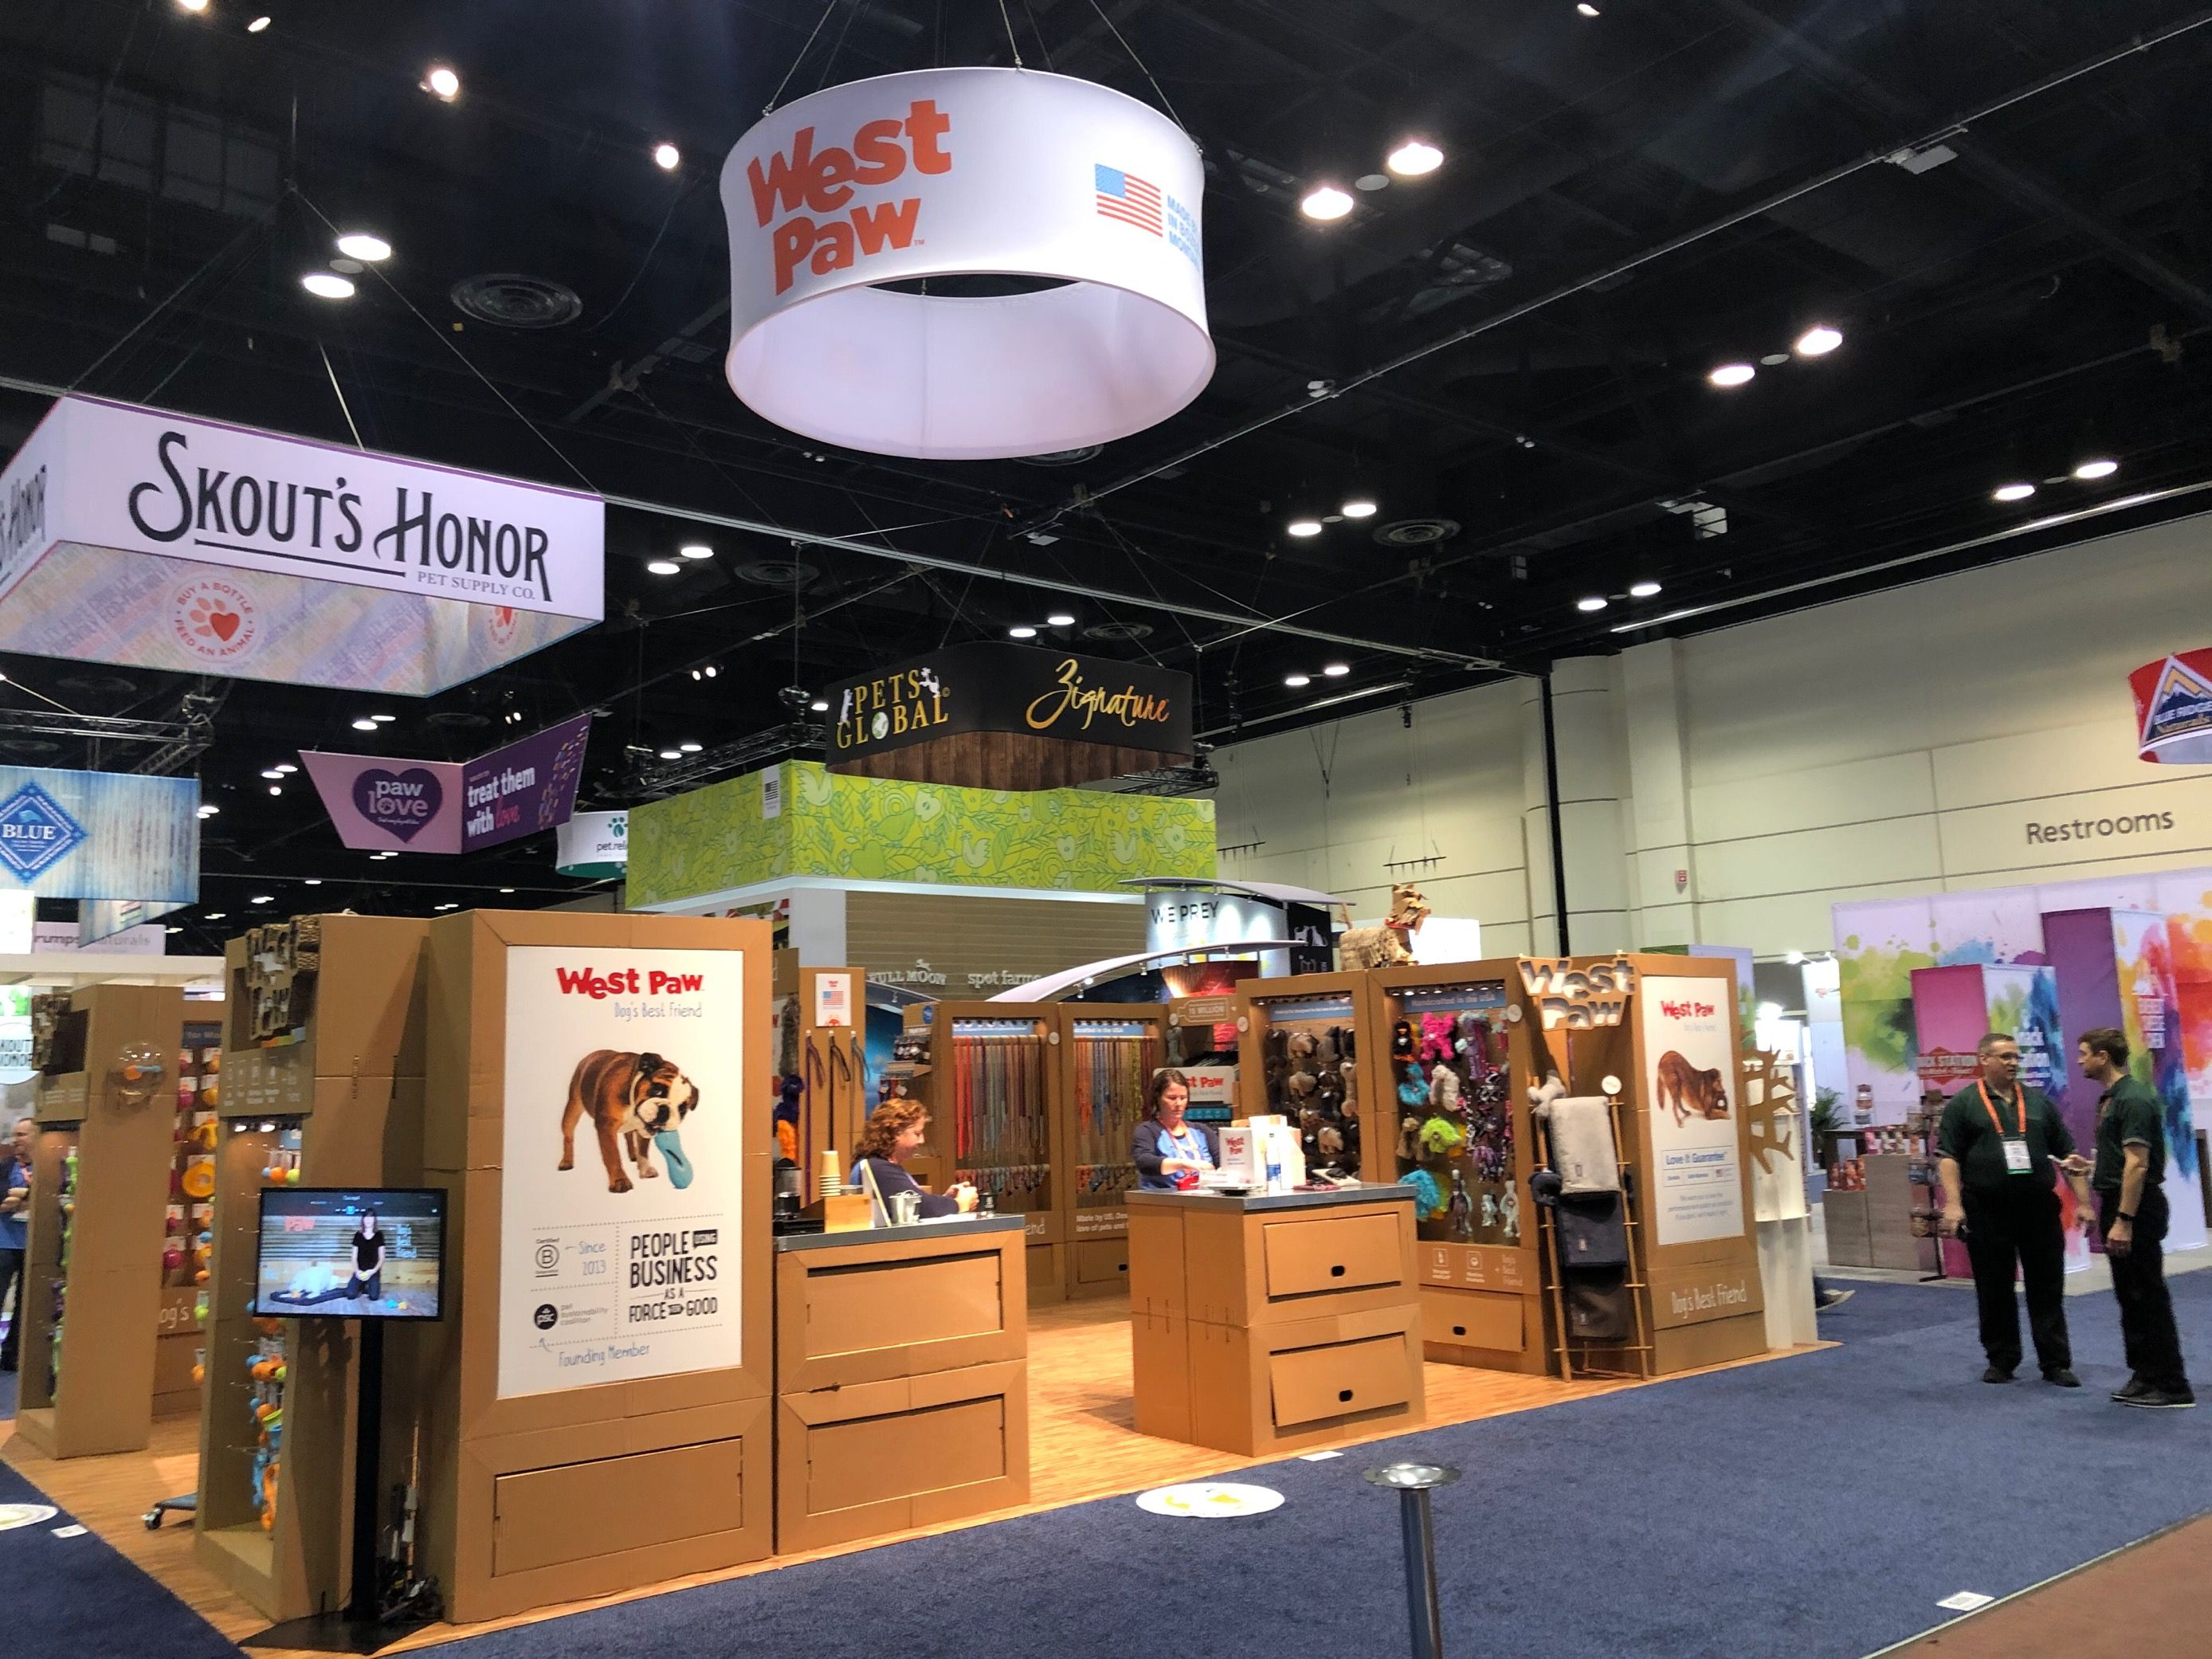 Global Pet Expo 2020 in 2020 West paw, Expo 2020, Paw